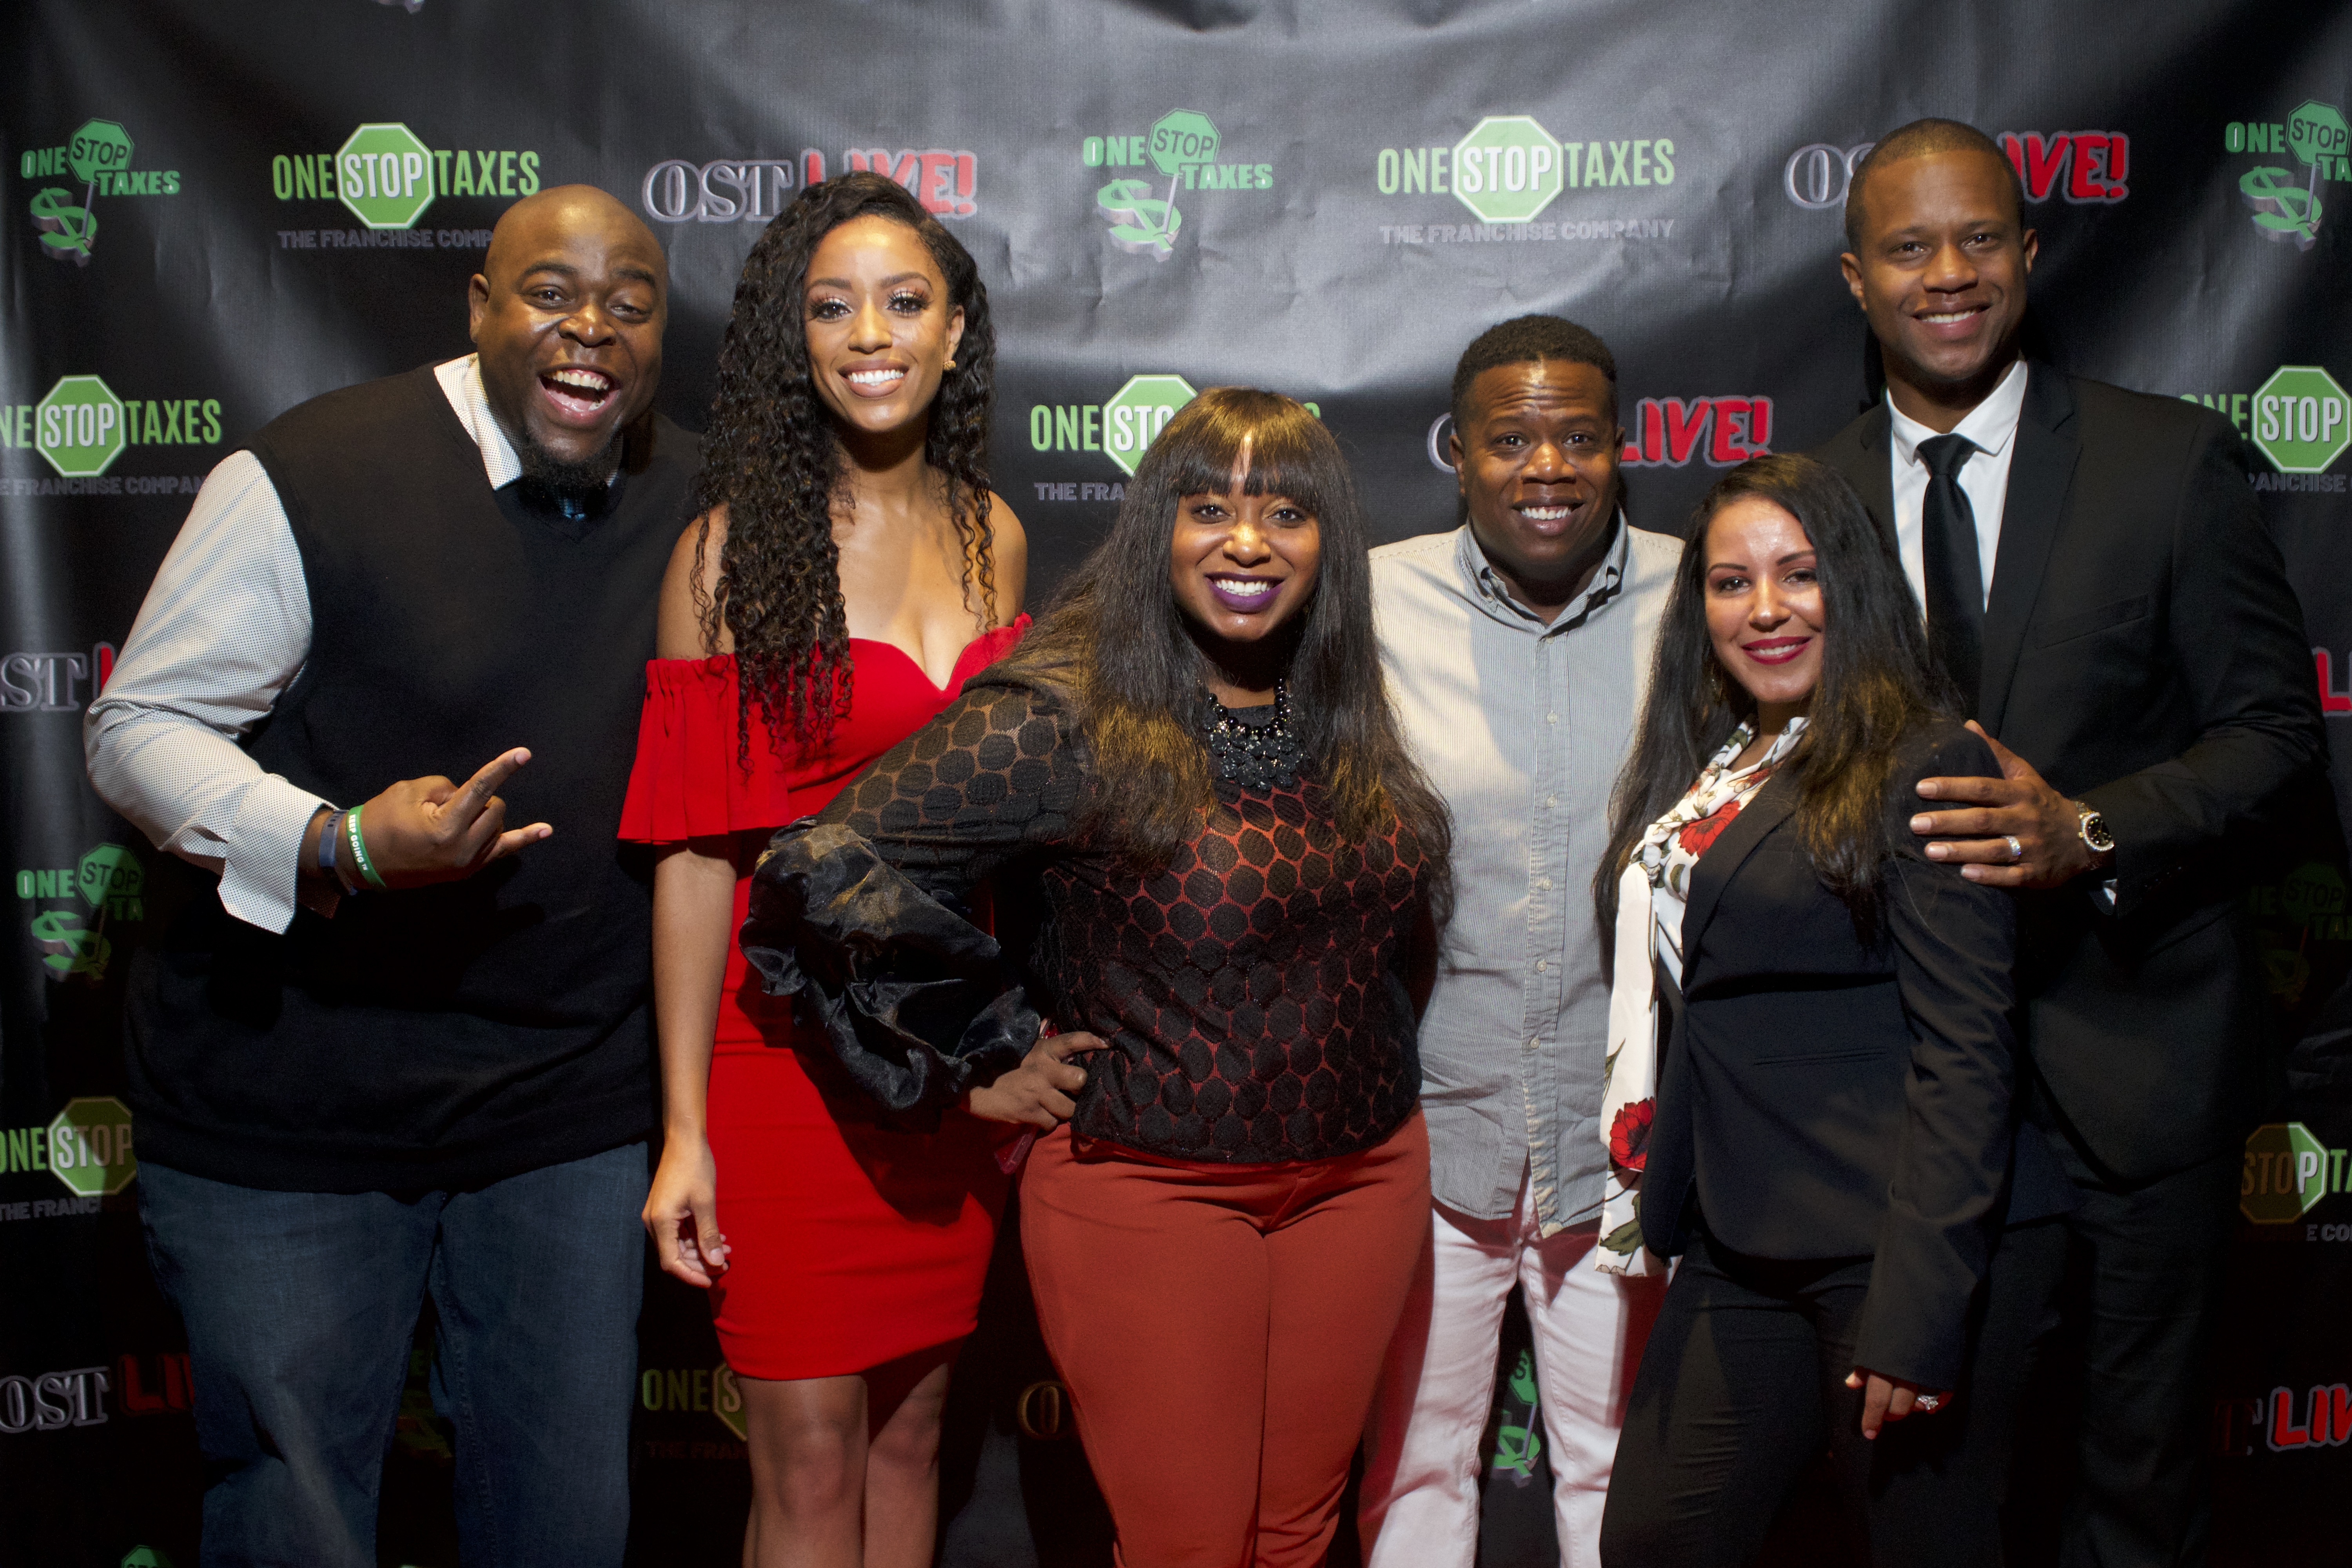 """ONE STOP Taxes Introduces the OST LIVE Conference for Entrepreneurs with Millennial Money Expert Ash """"Cash"""" Exantus, 11Alive's Francesca Amiker, Yung Joc & More"""